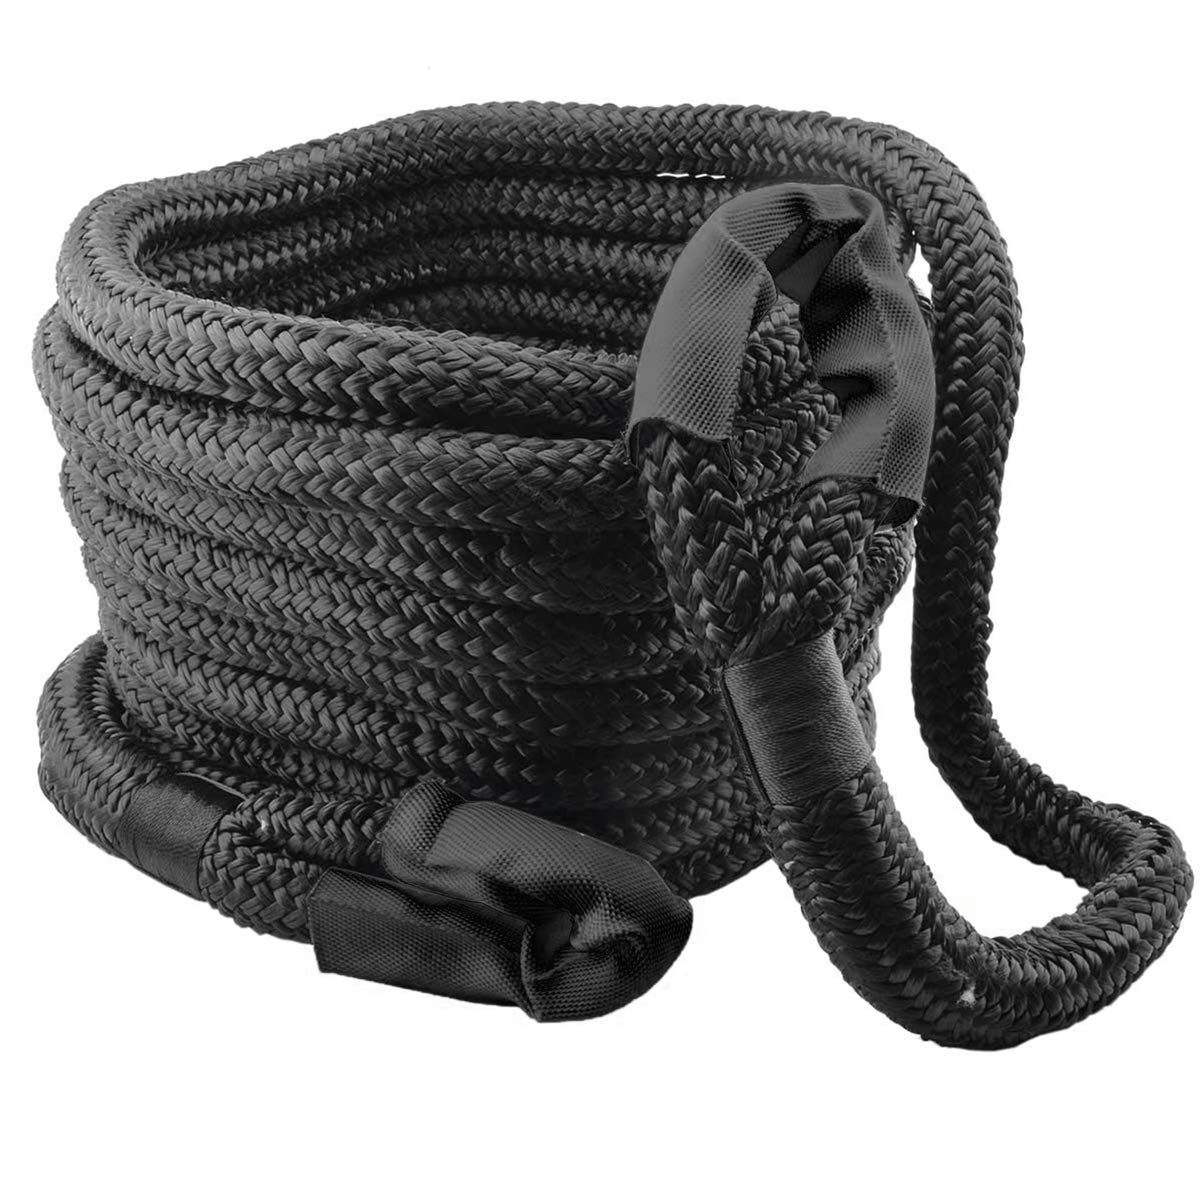 Valens Rigging 1'' x 30' Kinetic Vehicle Recovery Tow Rope by Valens Rigging